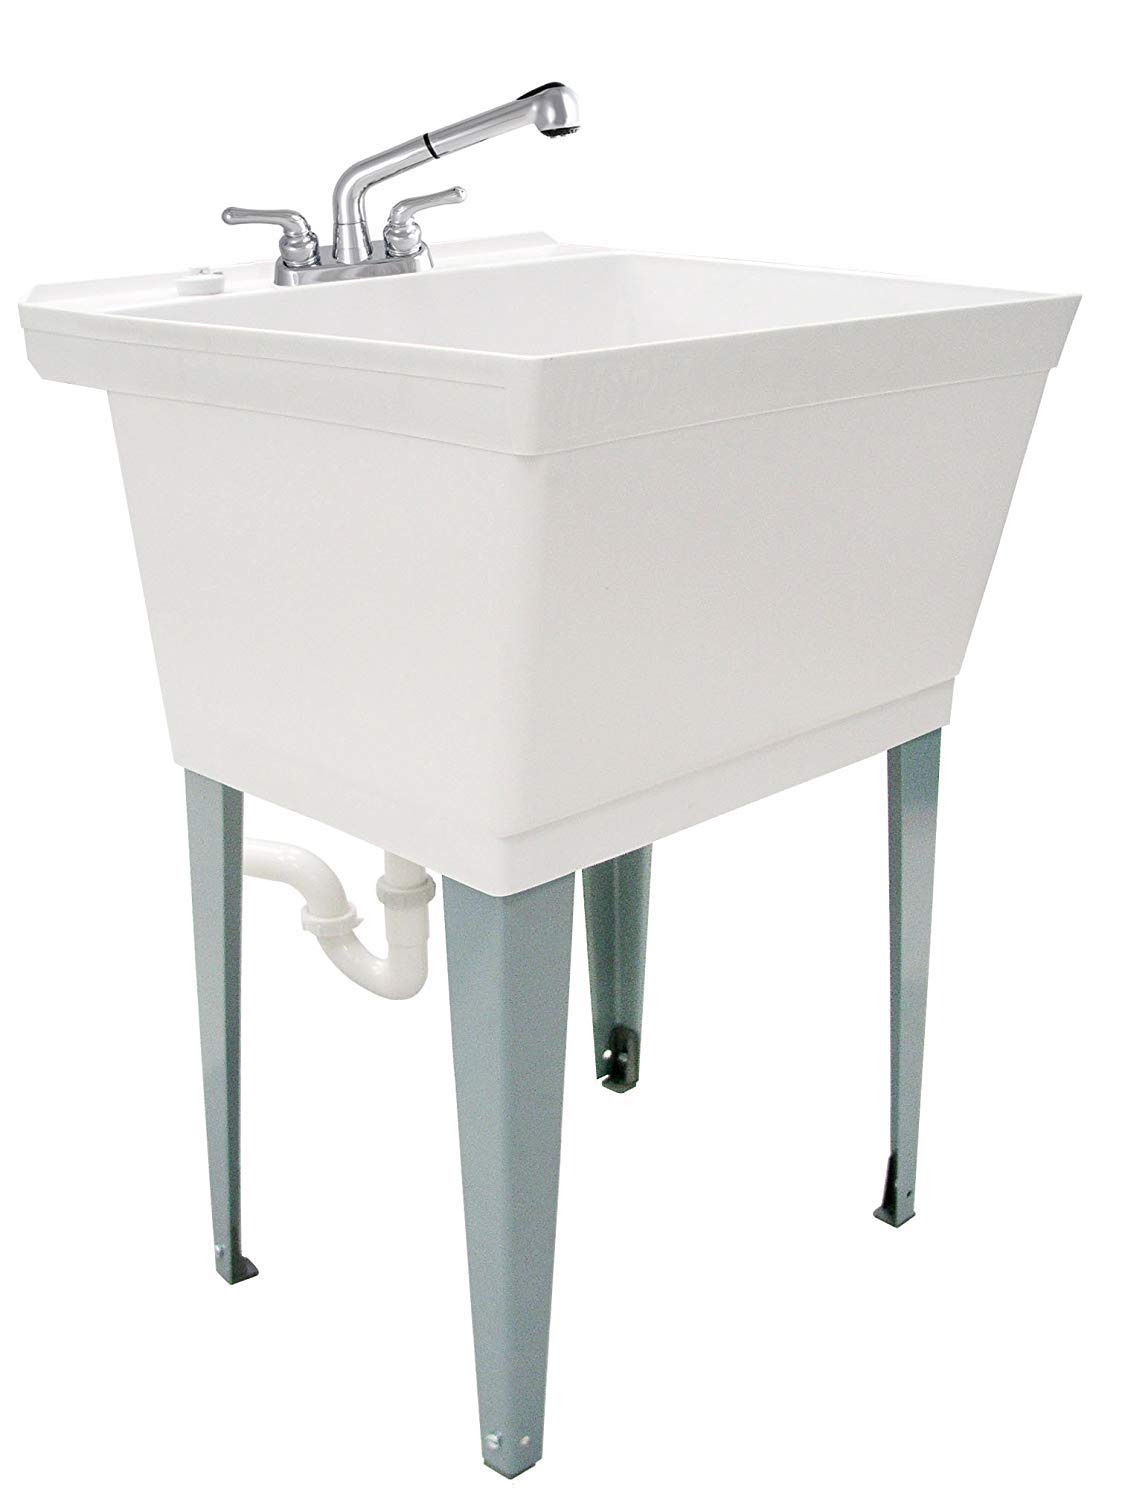 WORK DOESN'T STAND A CHANCE WITH THIS CLASSIC WHITE UTILITY SINK. Adds practicality to any laundry room, mudroom, washroom, service closet or workshop. Match your white washer and dryer or lighter decor. Complete tub kit includes white tub, non-metallic double handle pull out faucet, adjustable leveler legs, stainless steel supply lines, PVC pipe drain connection with p trap, thread tape, washers, nuts and rubber drain stopper plug. STREAM OR SPRAY PULL OUT FAUCET INCLUDED offers even more uses for the tub. Use as a slop sink and hose down soiled play clothes or filthy job uniforms before washing. Fill a cleaning bucket with hot water without having to hold the heavy pail up to the faucet. Or use as a small dog grooming bathtub. Adjust the foot levelers to the perfect height and level the tub on bumpy or uneven surfaces. Perfect for an unfinished basement or garage. MULTI PURPOSE FOR HOME OR COMMERCIAL USE. Functions perfectly as the traditional place to drain overflow water from your washing machine or the spot to quickly drop in a dirty mop, cleaning brushes and rags. Stage your clean ups and fix your worst messes. Small ledge on the faucet side can be a shelf or holder for a sponge, bar of soap or other cleaning product. It's a great complement to a remodelling job or light construction. VIRTUALLY INDESTRUCTIBLE LAUNDRY TUB DESIGN with molded in drain. Made from heavy duty thermoplastic. Rust and stain resistant for your dirtiest jobs. Rugged and meant to fill lots of needs and uses. Base intended to function standalone but if desired can be bolted to the floor using pre-cut holes at the bottom of the leg levelers. Floor mount and wall mount hardware is not included. STRAIGHTFORWARD SET UP AND INSTALLATION: Easy to assemble and install with clear illustrated step by step instructions. Installed dimensions are 22 7/8 inches wide, 23 3/8 inches deep, 33 3/4 inches high (with legs). Part number 040 JS6000. Limited one year warranty.